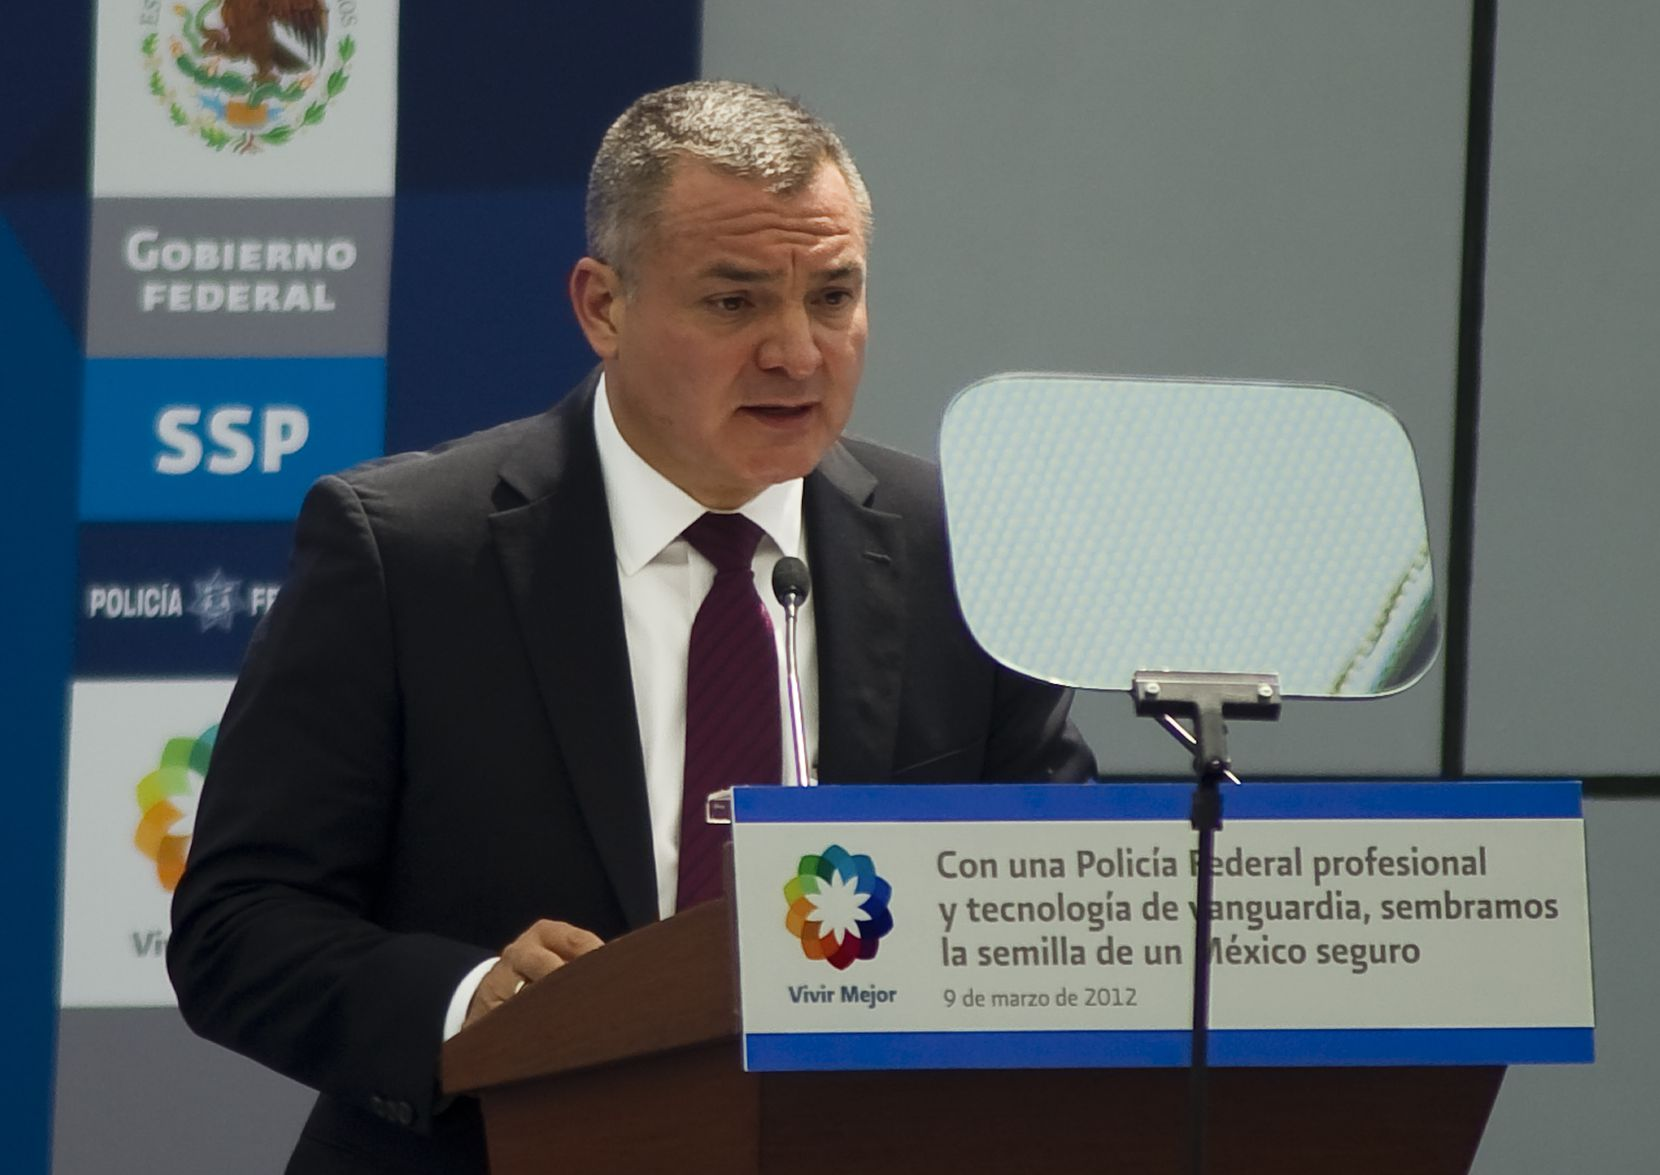 On March 9, 2012, former Mexican Secretary of Public Safety Genaro Garcia Luna spoke during the inauguration of the Federal Police's scientific division in Mexico City. (ALFREDO ESTRELLA/AFP via Getty Images)